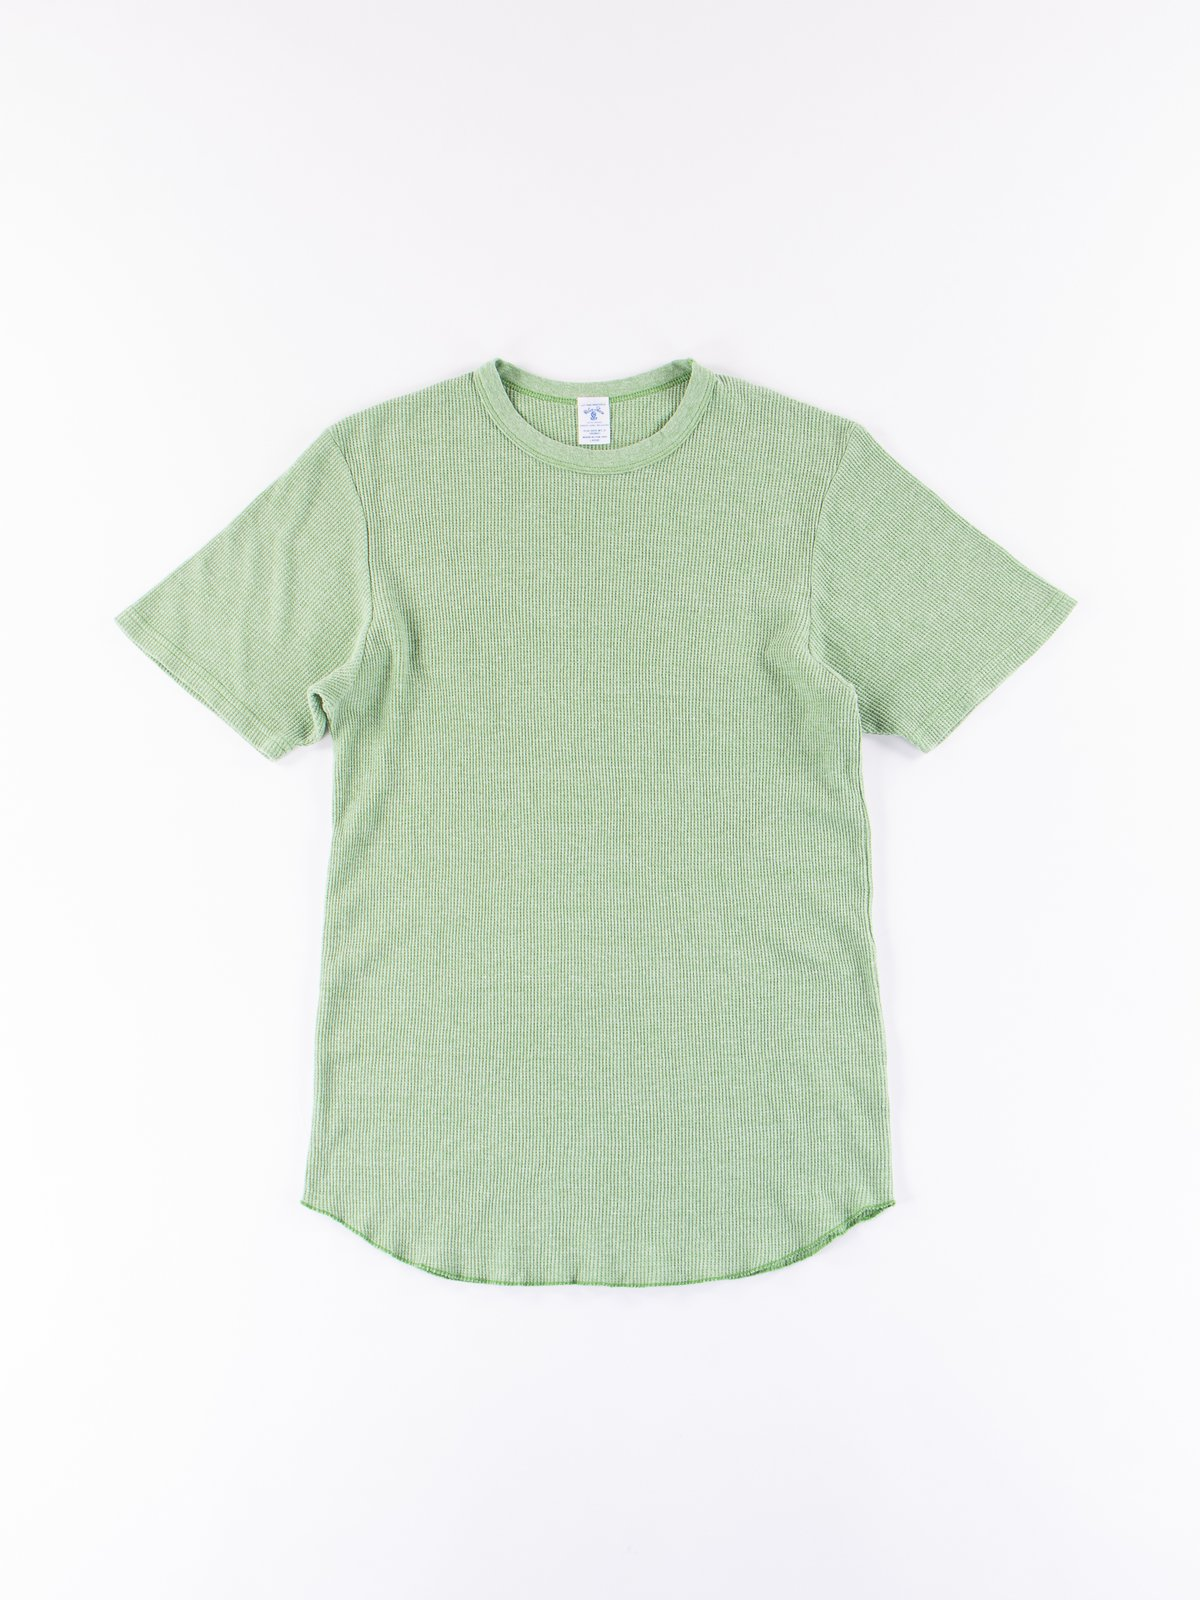 Heather Lime Tri Thermal T–Shirt - Image 1